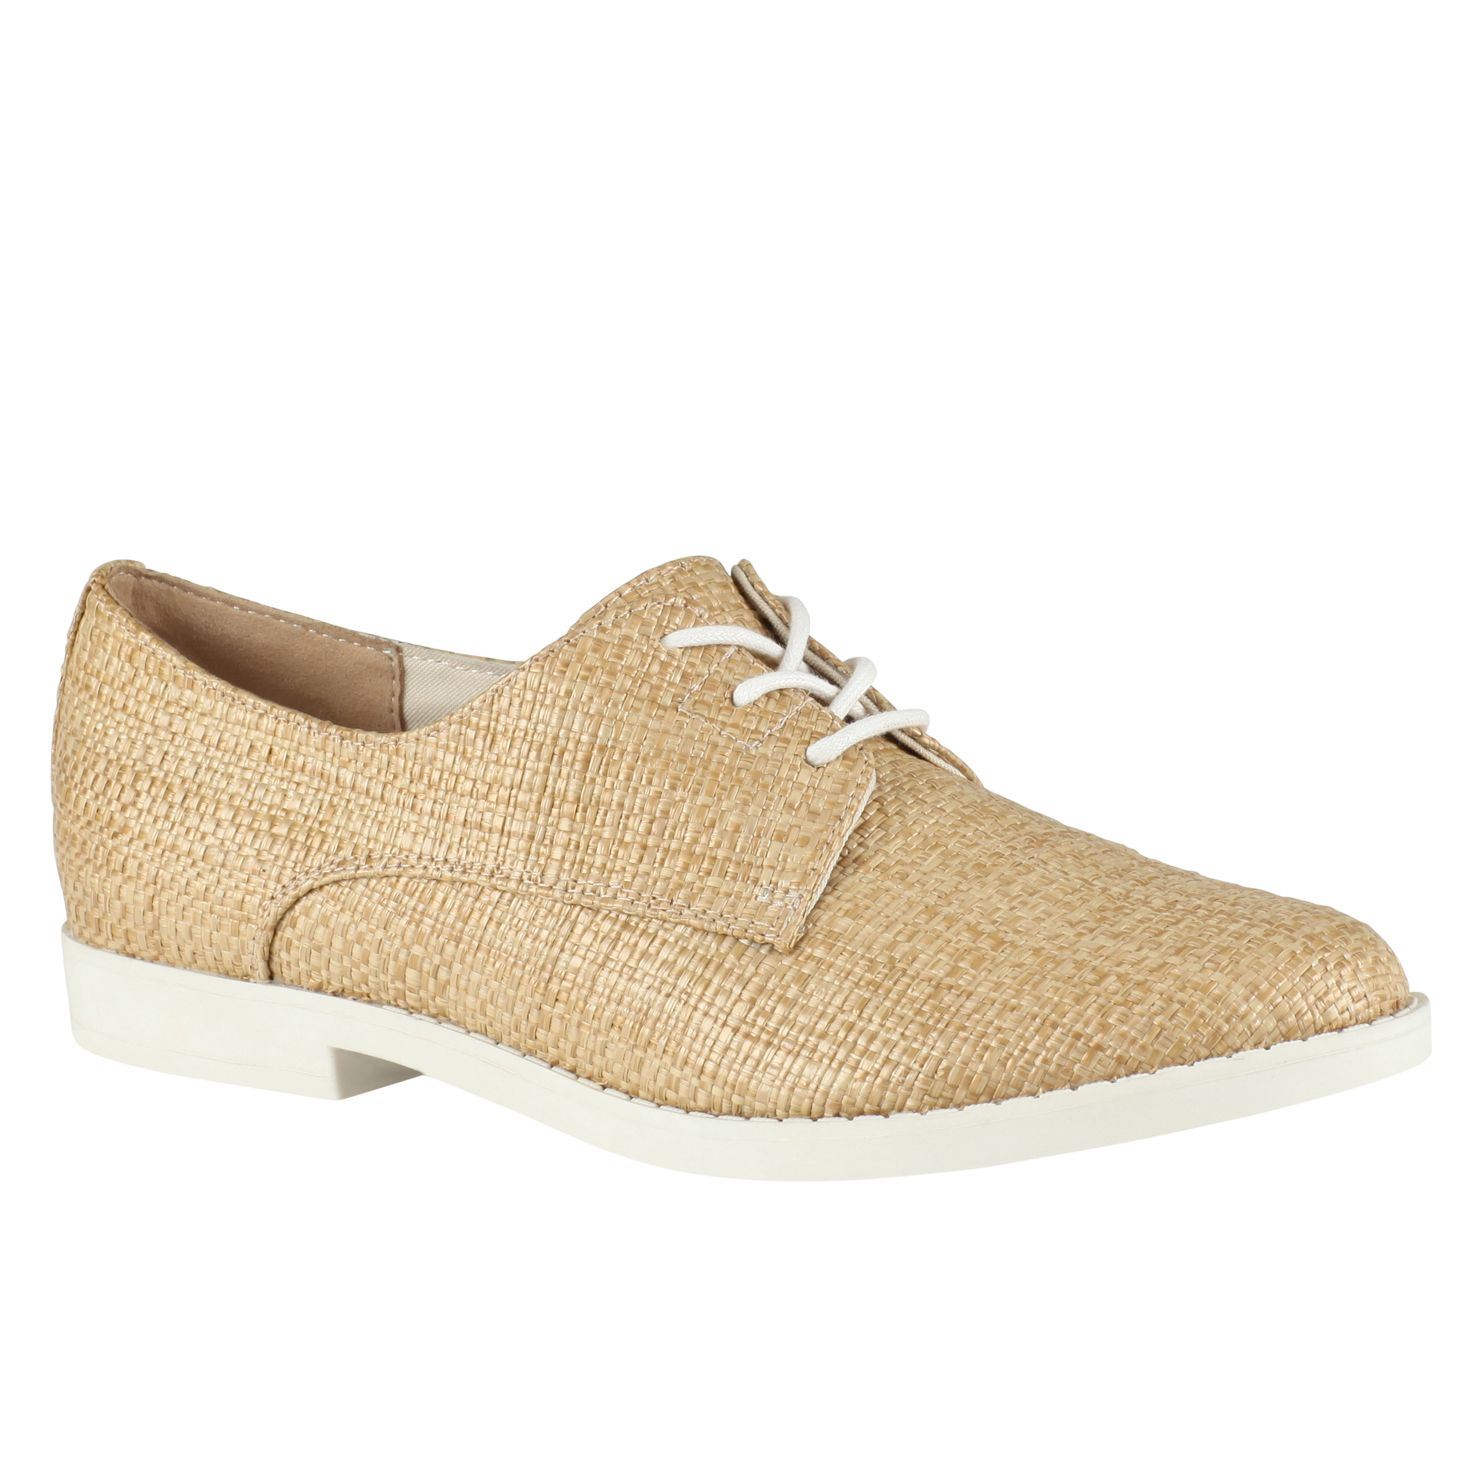 Paowen almond toe lace up shoes